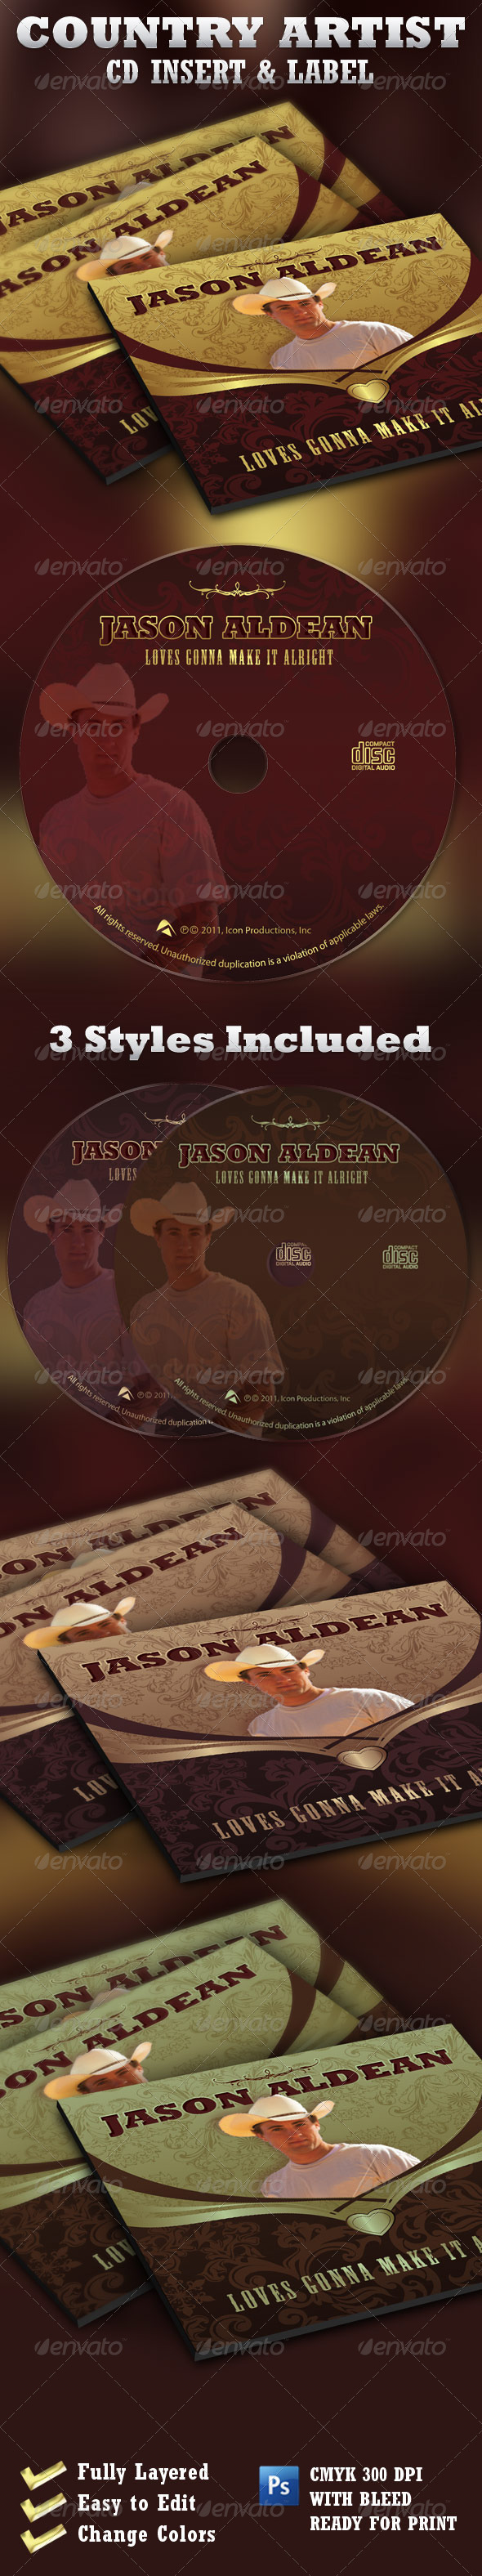 Country Artist  CD Label and Insert  Template - CD & DVD artwork Print Templates